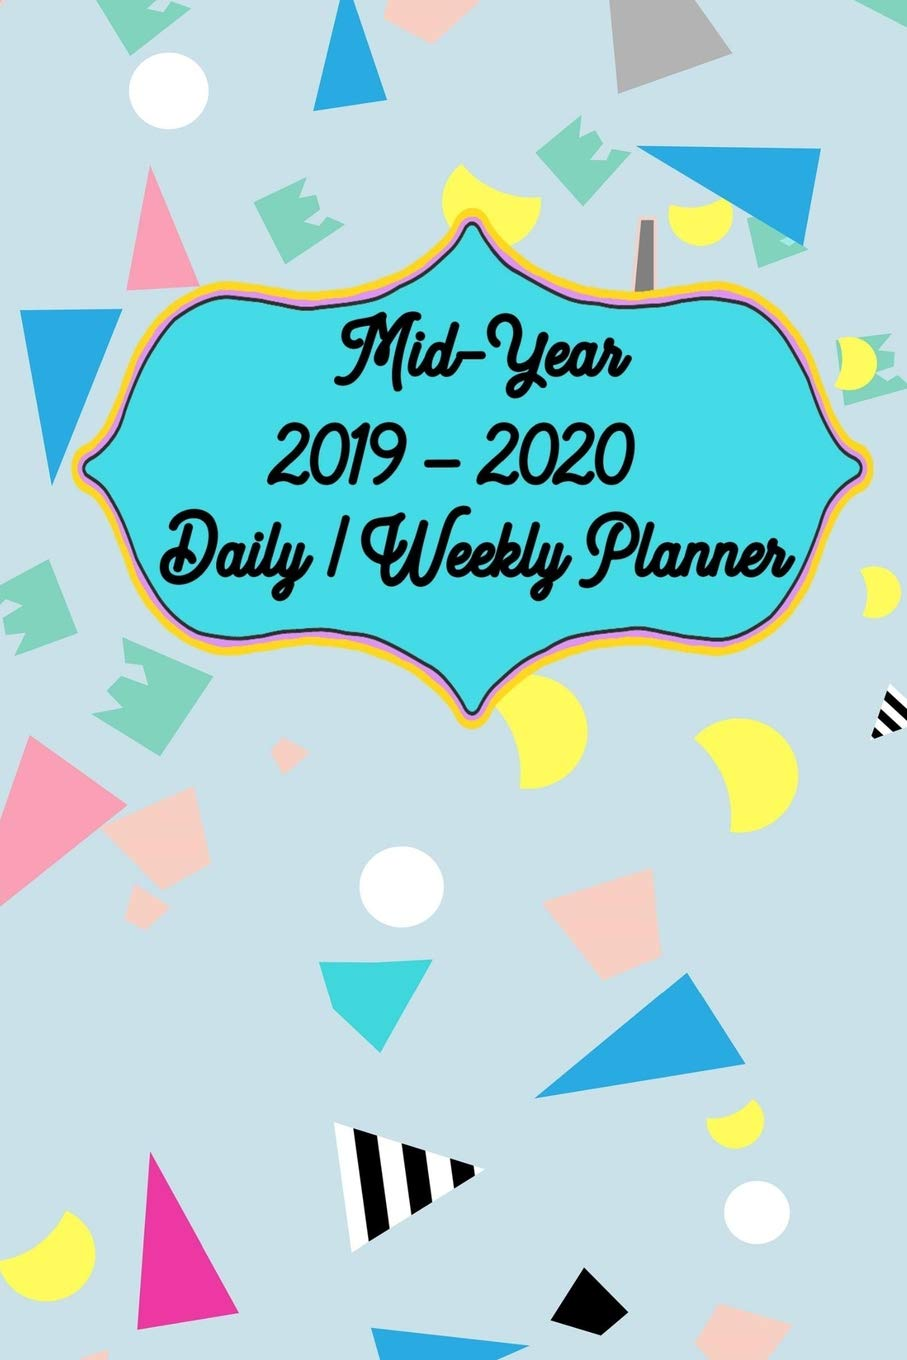 Amazon.com: Mid-Year 2019 – 2020 Daily / Weekly Planner ...